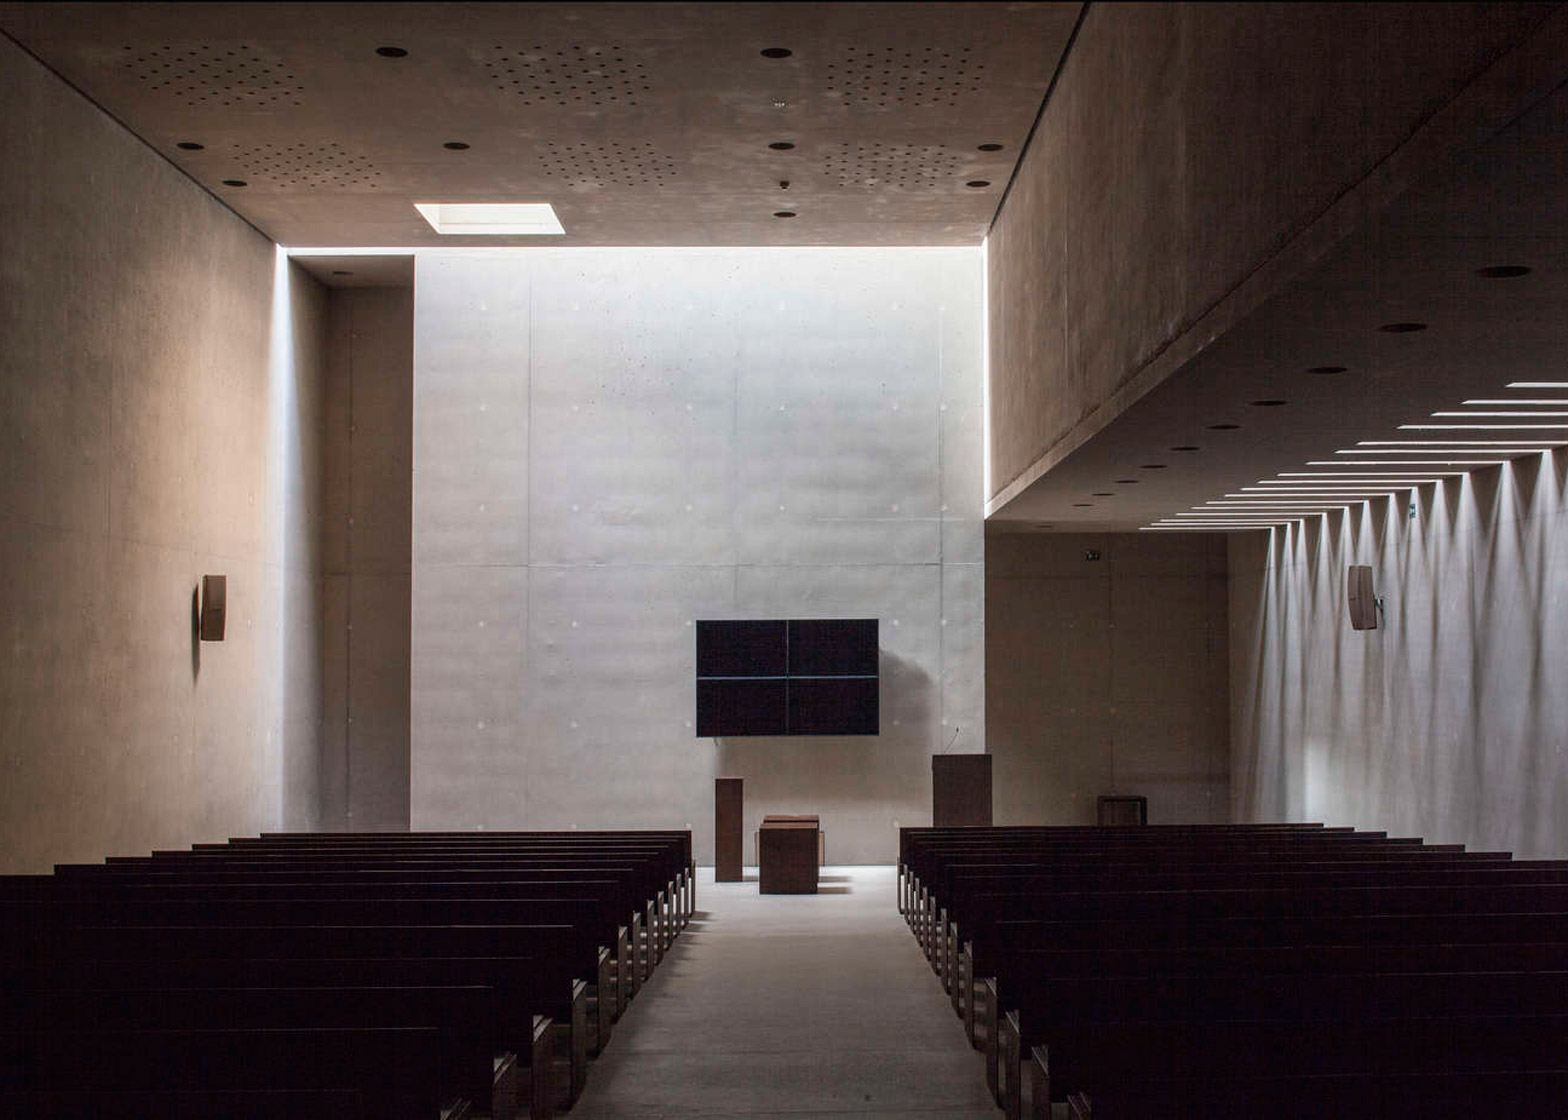 Crematorium Hofheide in Belgium by Coussée & Goris architecten and RCR Arquitectes